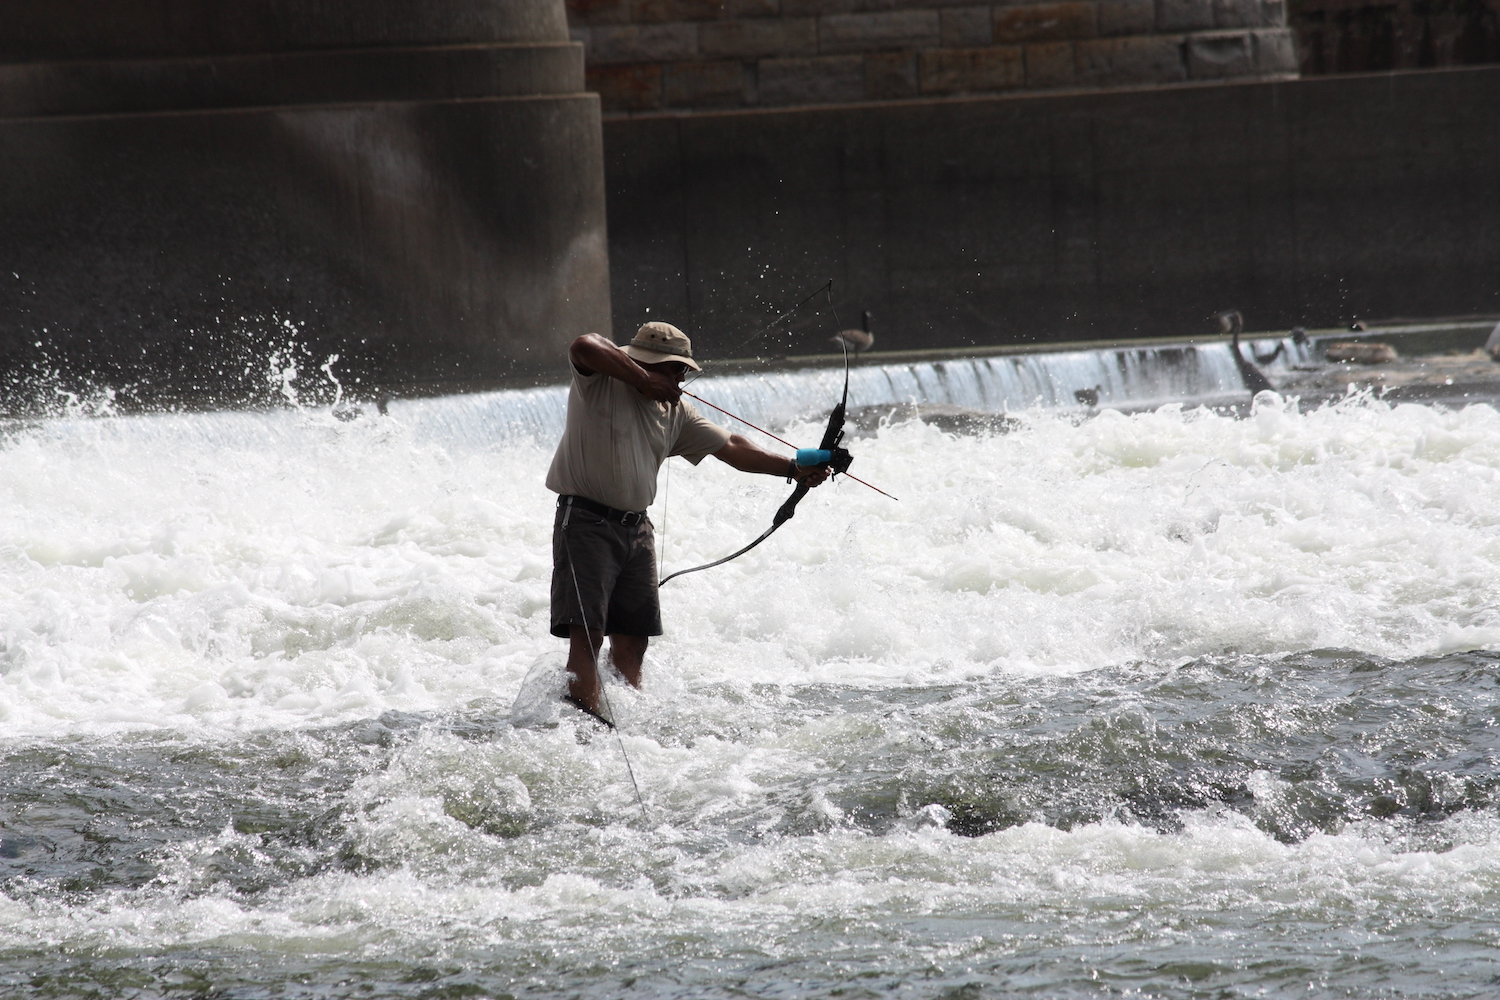 Bow fishing in rapids